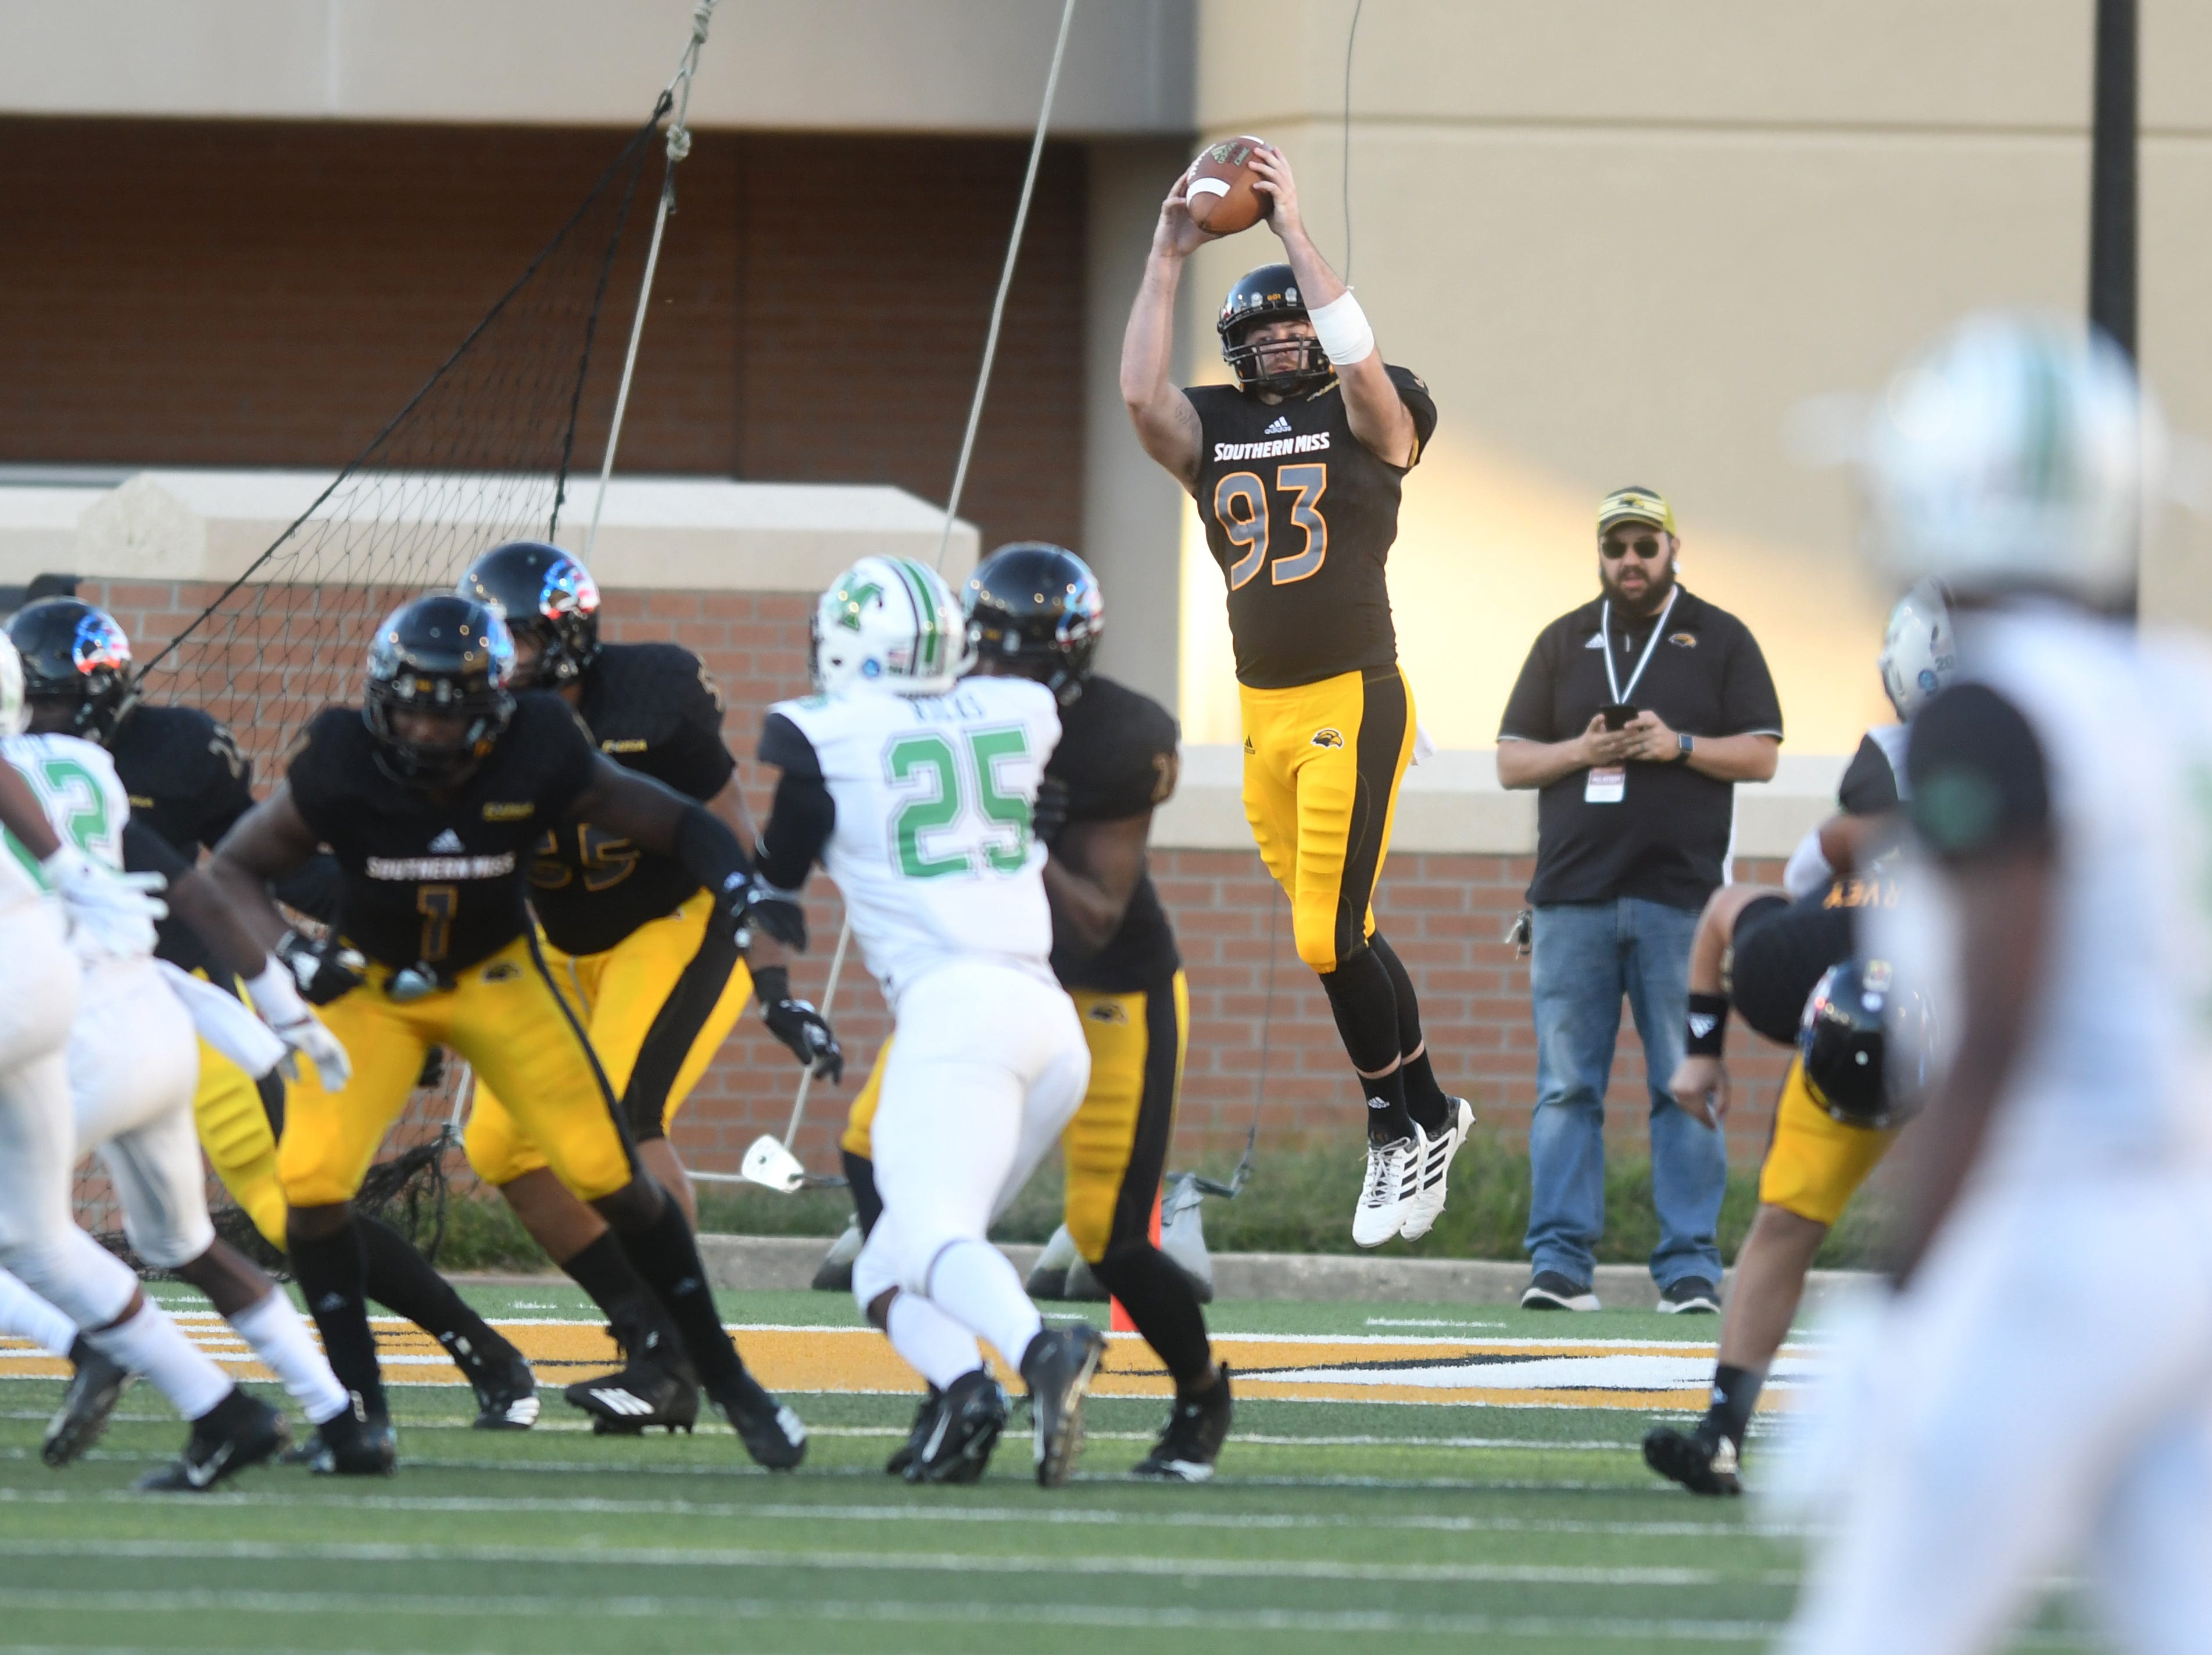 Southern Miss punter Zac Everett jumps to catch a high snap in a game against Marshall at M.M. Roberts Stadium on Saturday, November 3, 2018.